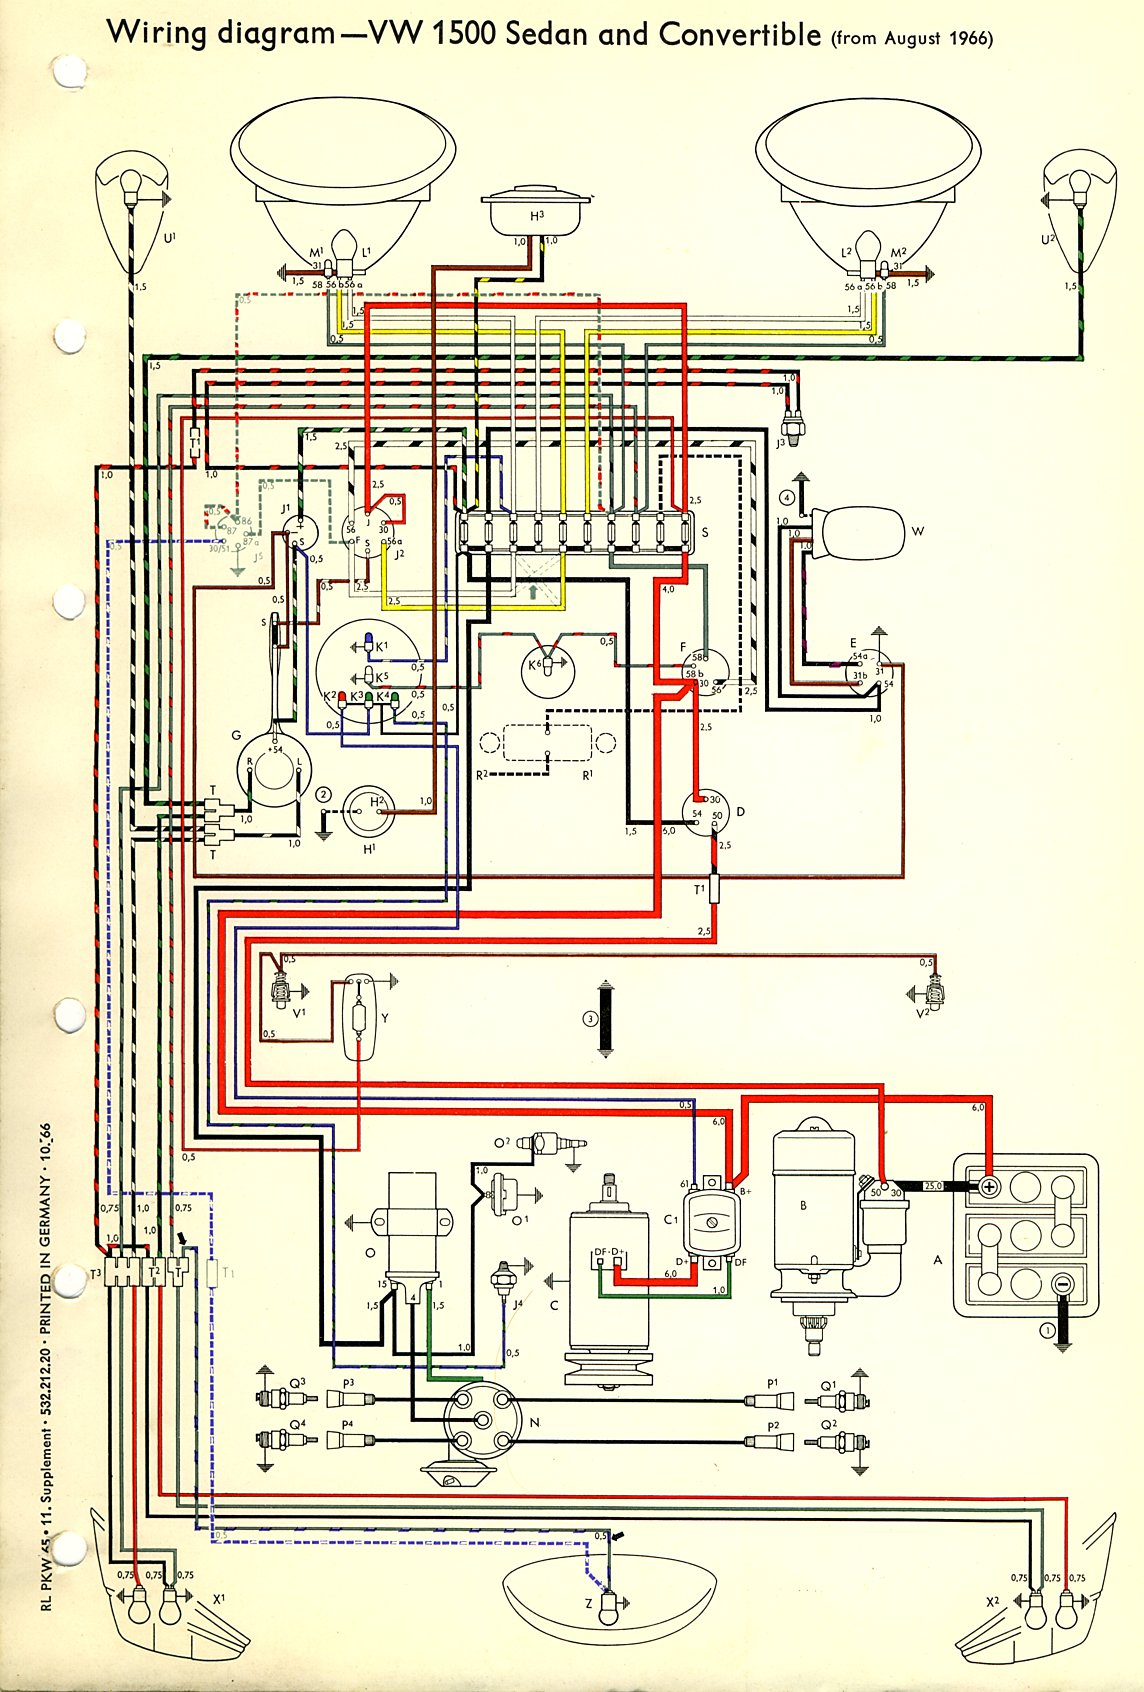 1974 Vw Wiring Diagrams Data Diagram Flagstaff Camper Thesamba Com Type 1 Generator